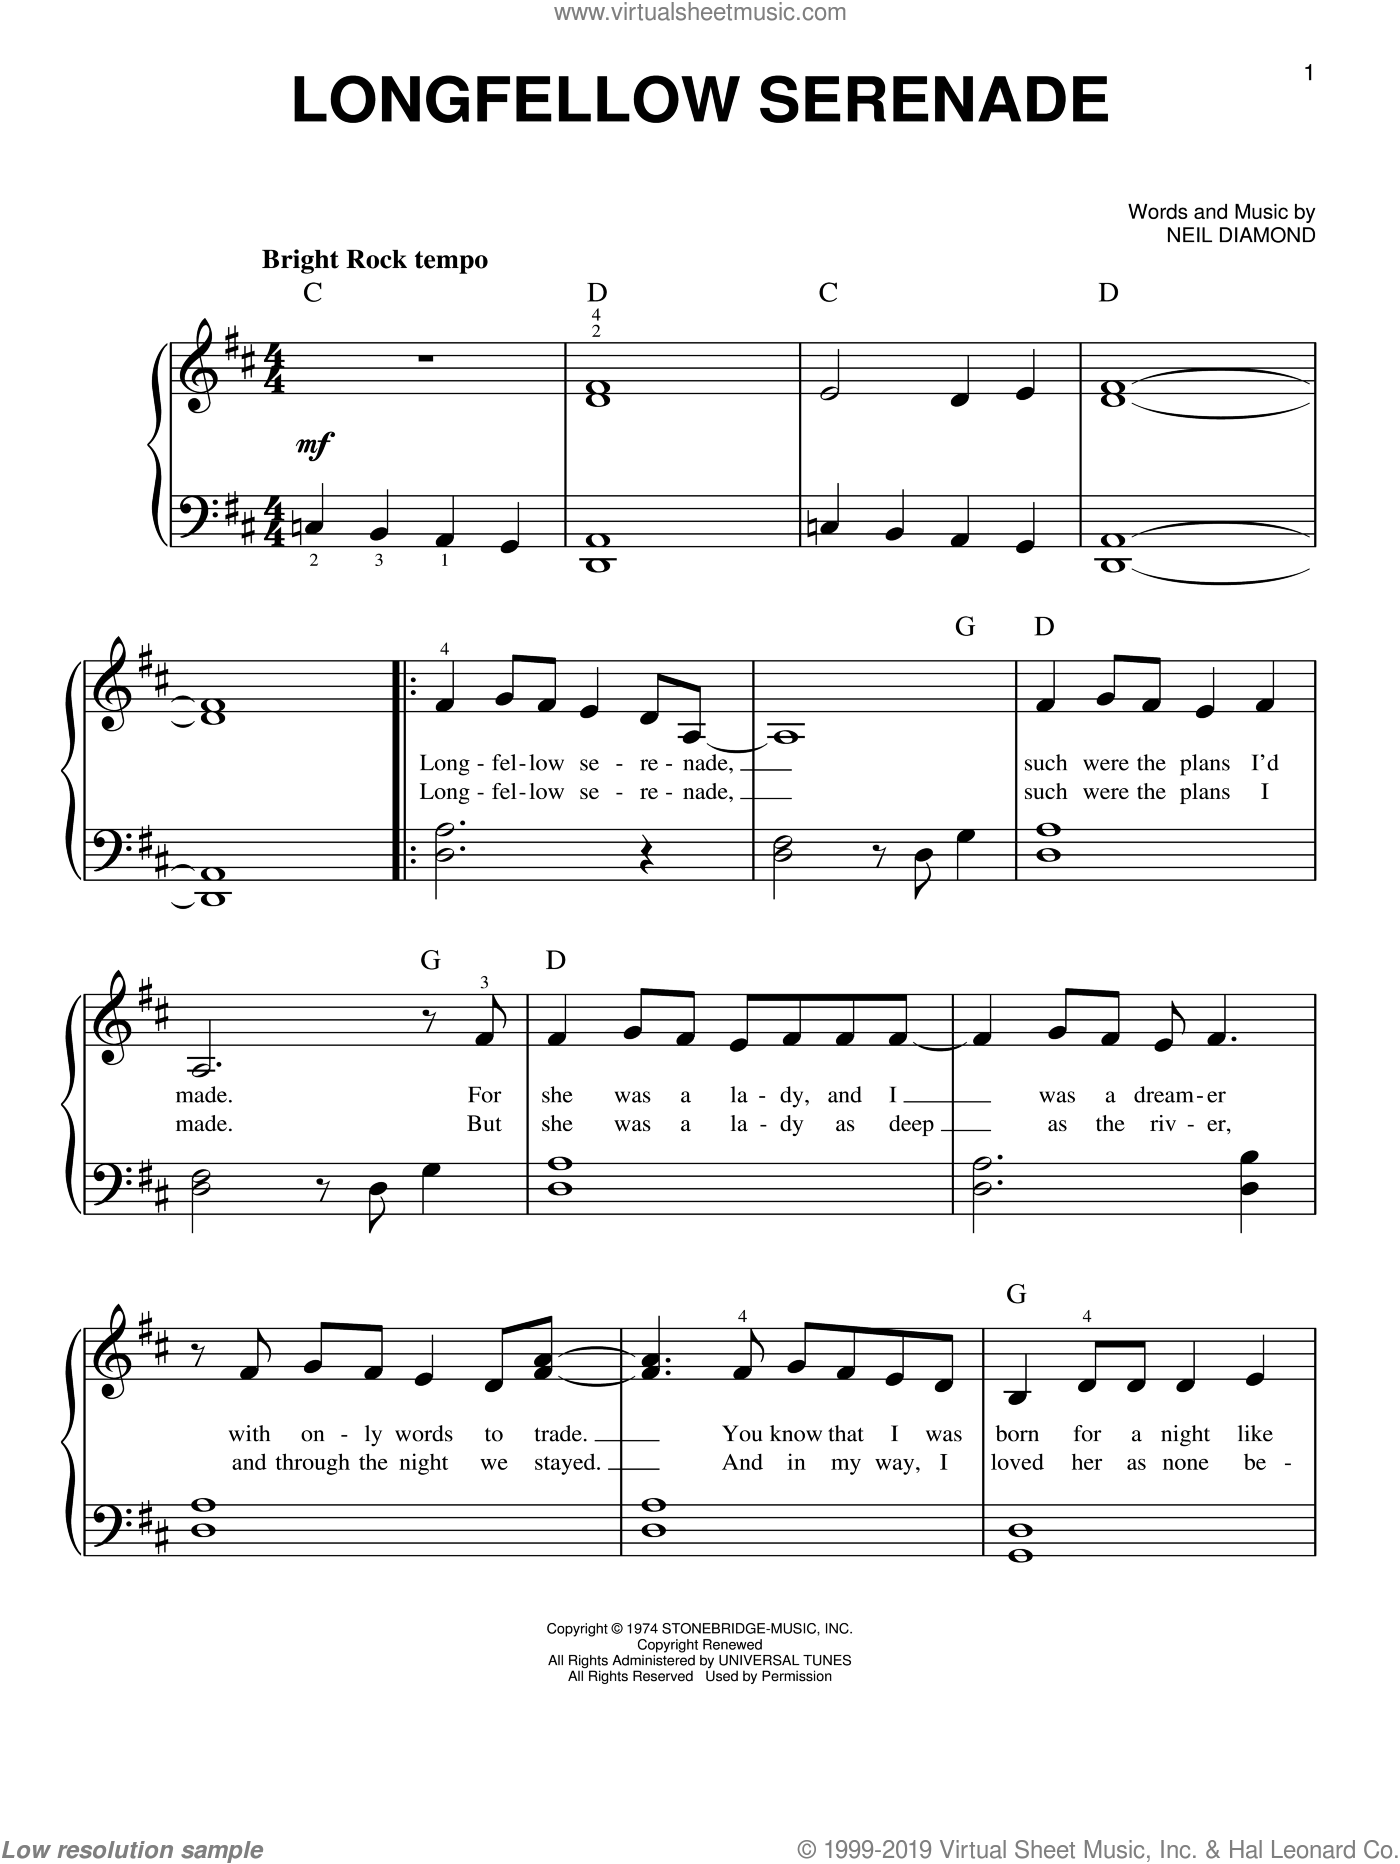 Longfellow Serenade sheet music for piano solo by Neil Diamond. Score Image Preview.